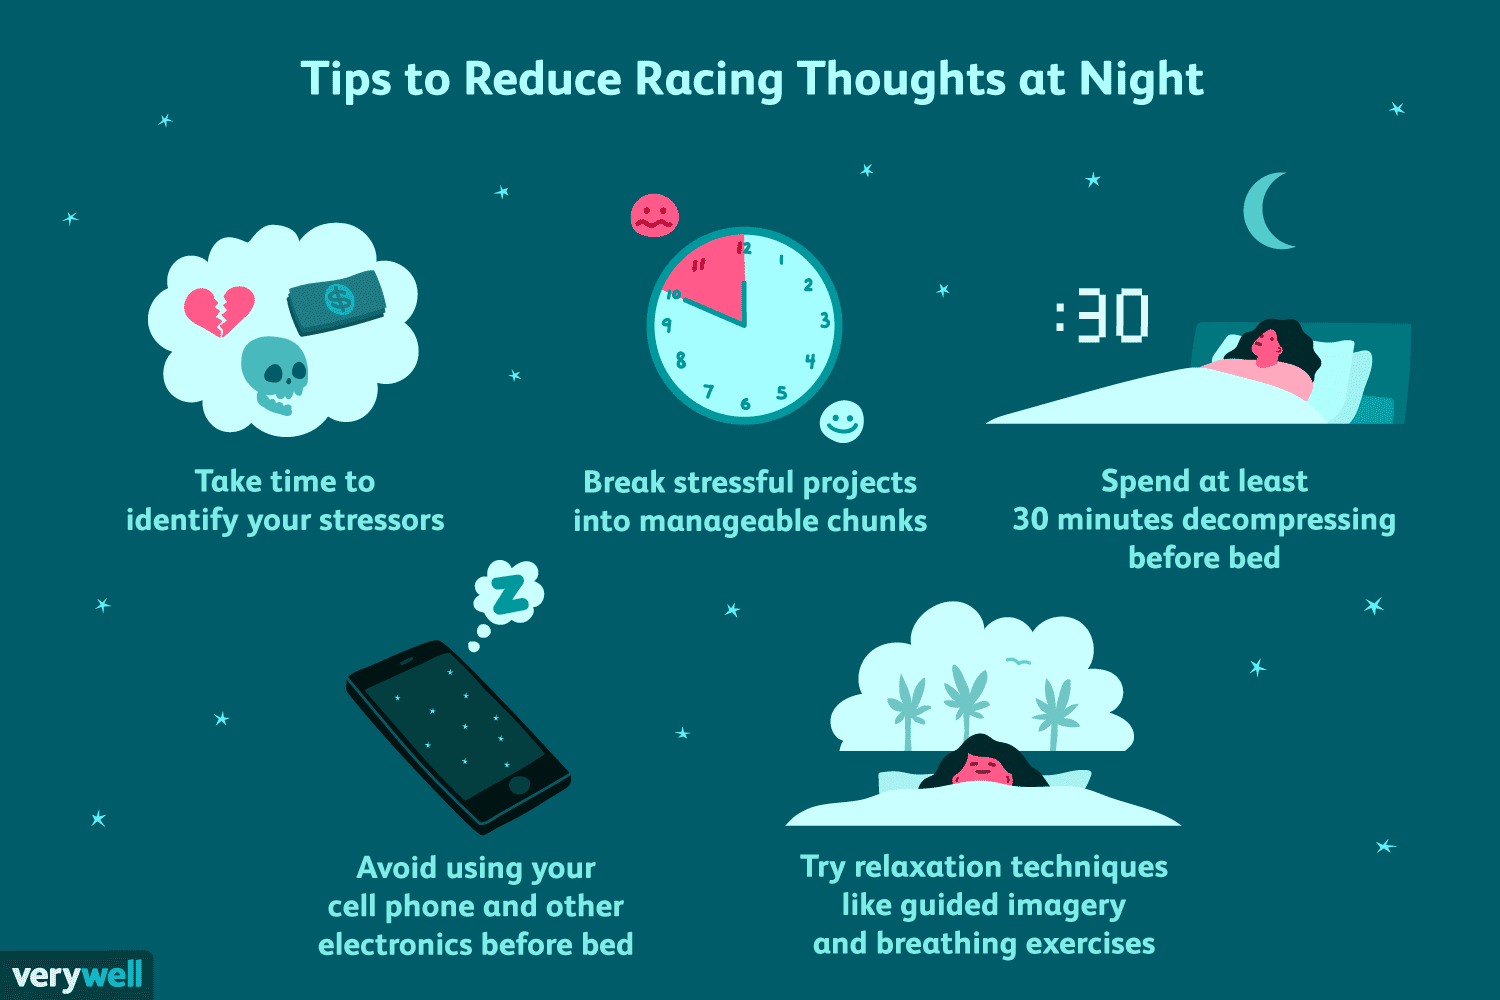 Can T Do My Job Because Of Anxiety how to reduce racing thoughts at night due to insomnia